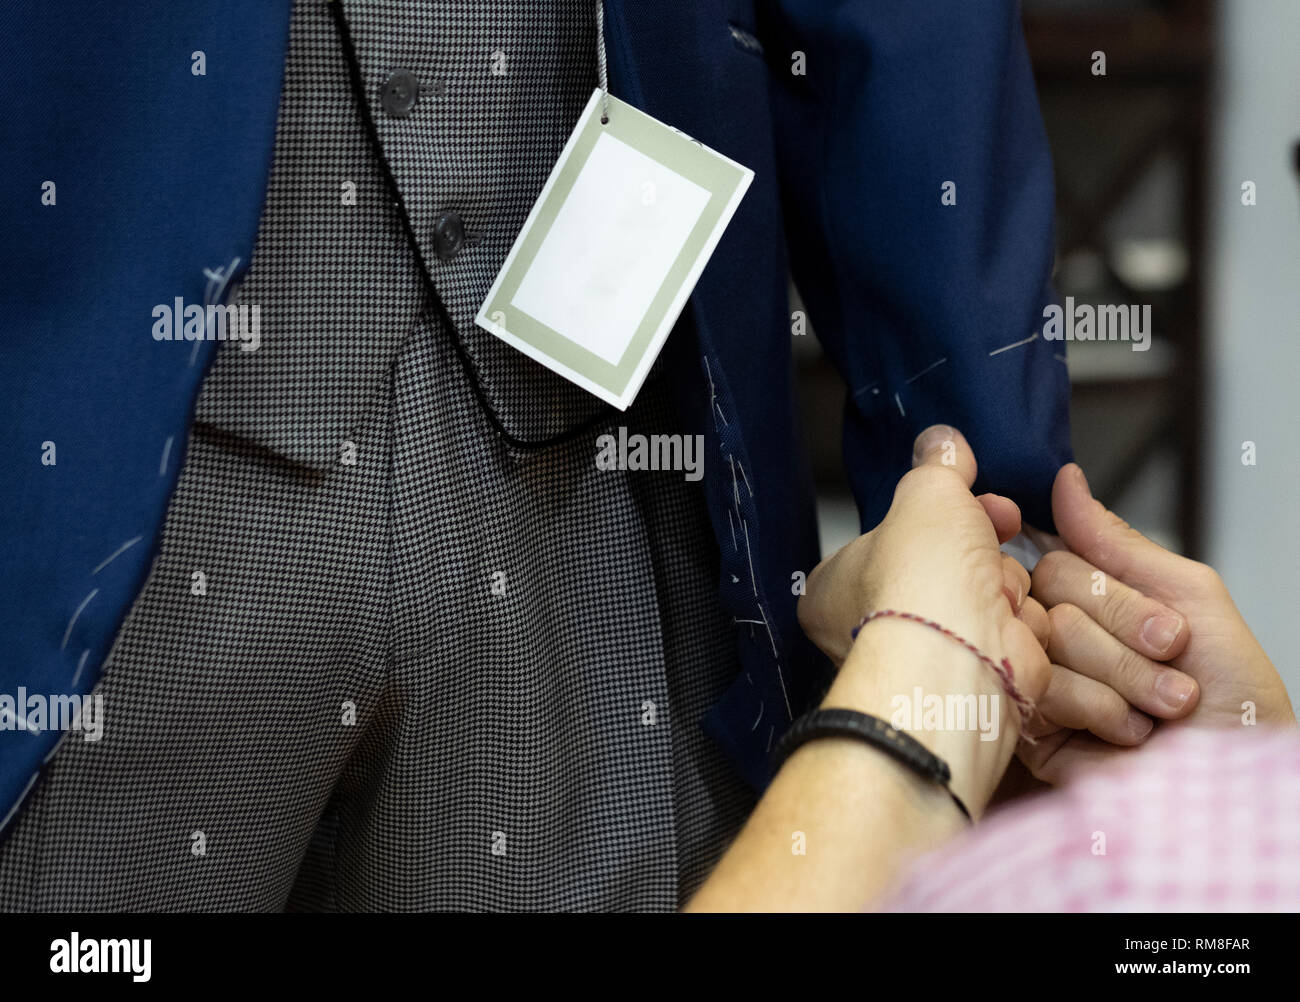 tailor arranging boyfriend suit sleeve in a store - Stock Image